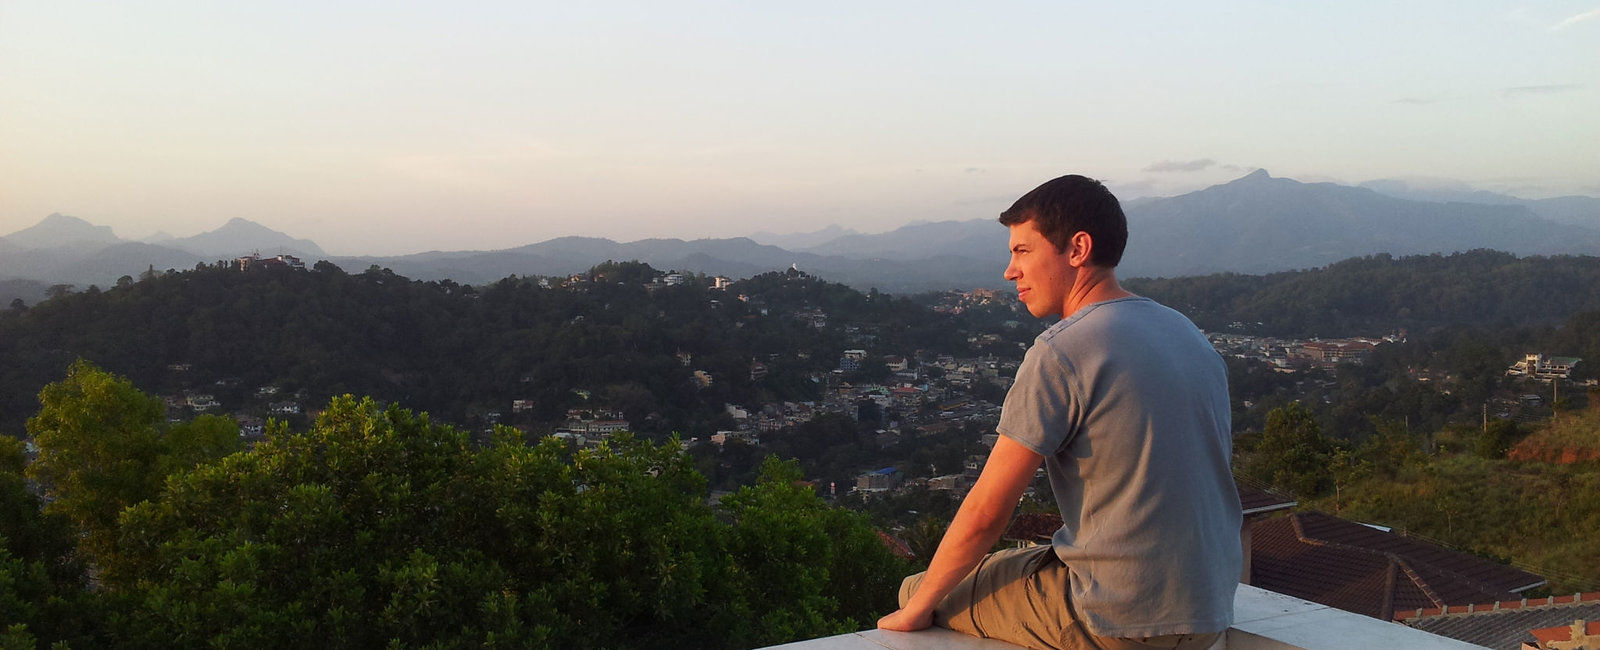 Luke Holland - Medical Electives in Sri Lanka Kandy